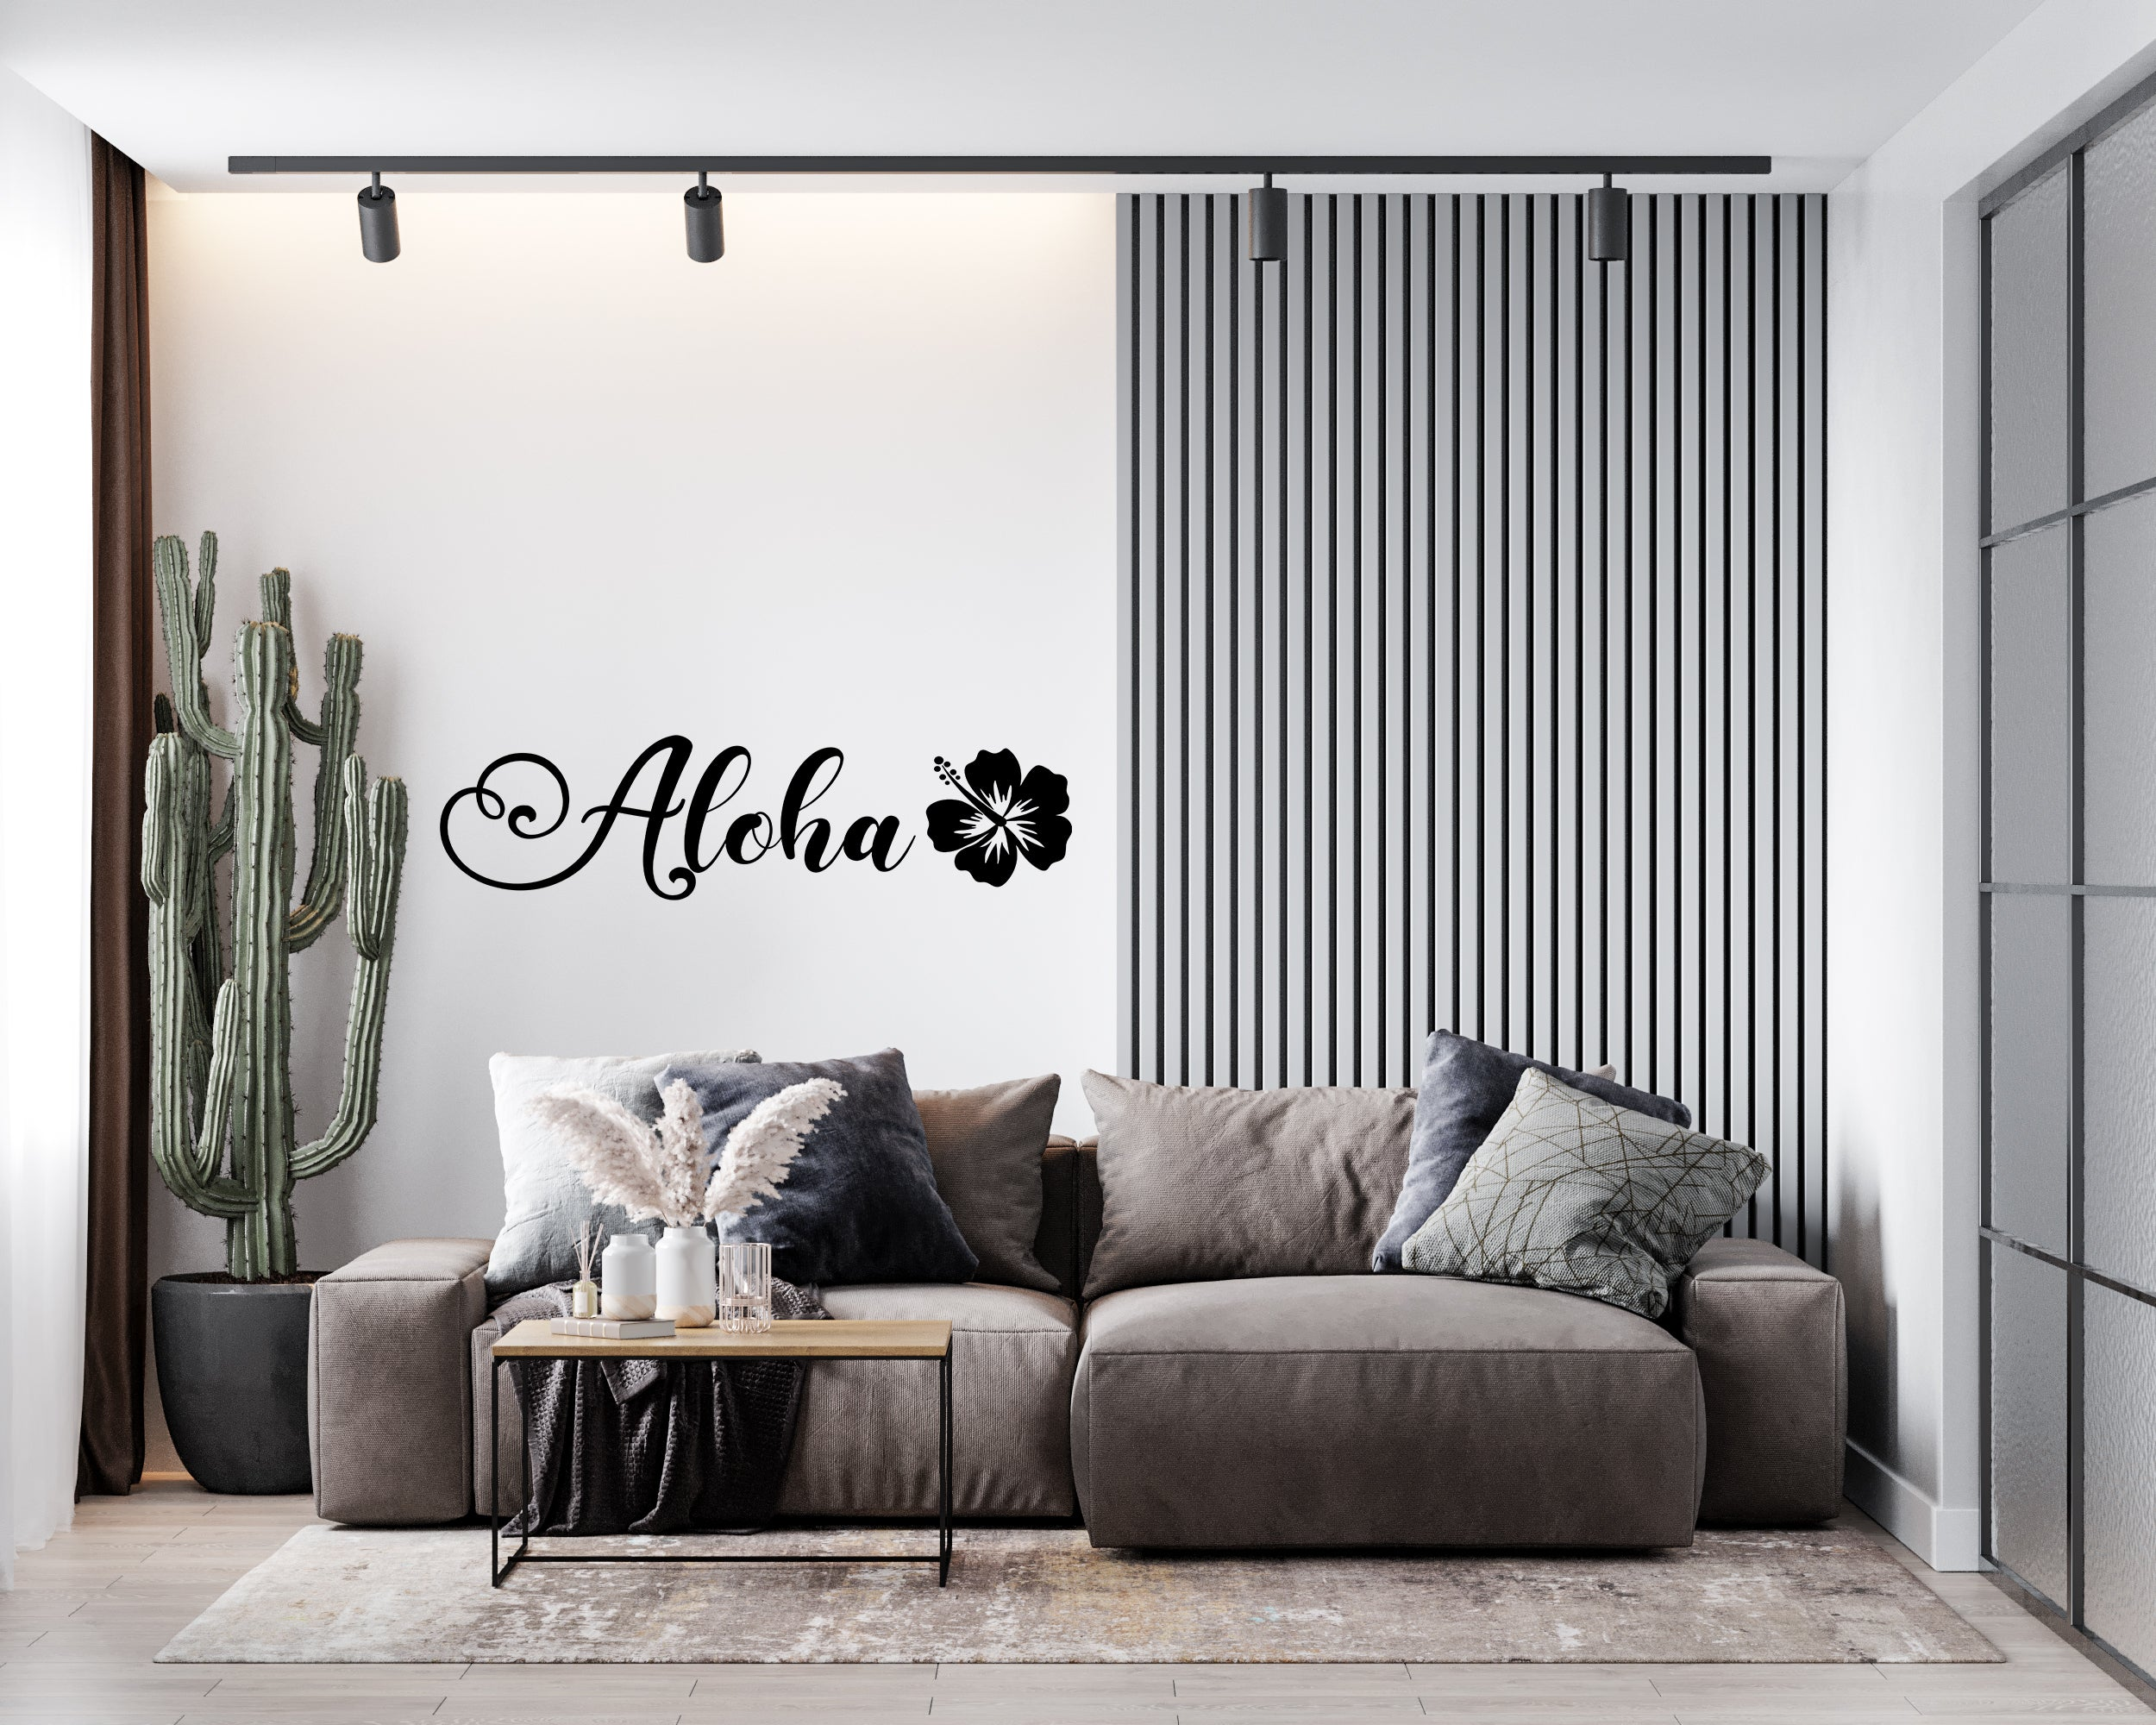 Aloha Beach Vinyl Sticker Tattoo For Living Room,Wall Tattoo,Wall Stickers,Art Decal Decor Poster Decoration Mural,Window Wall